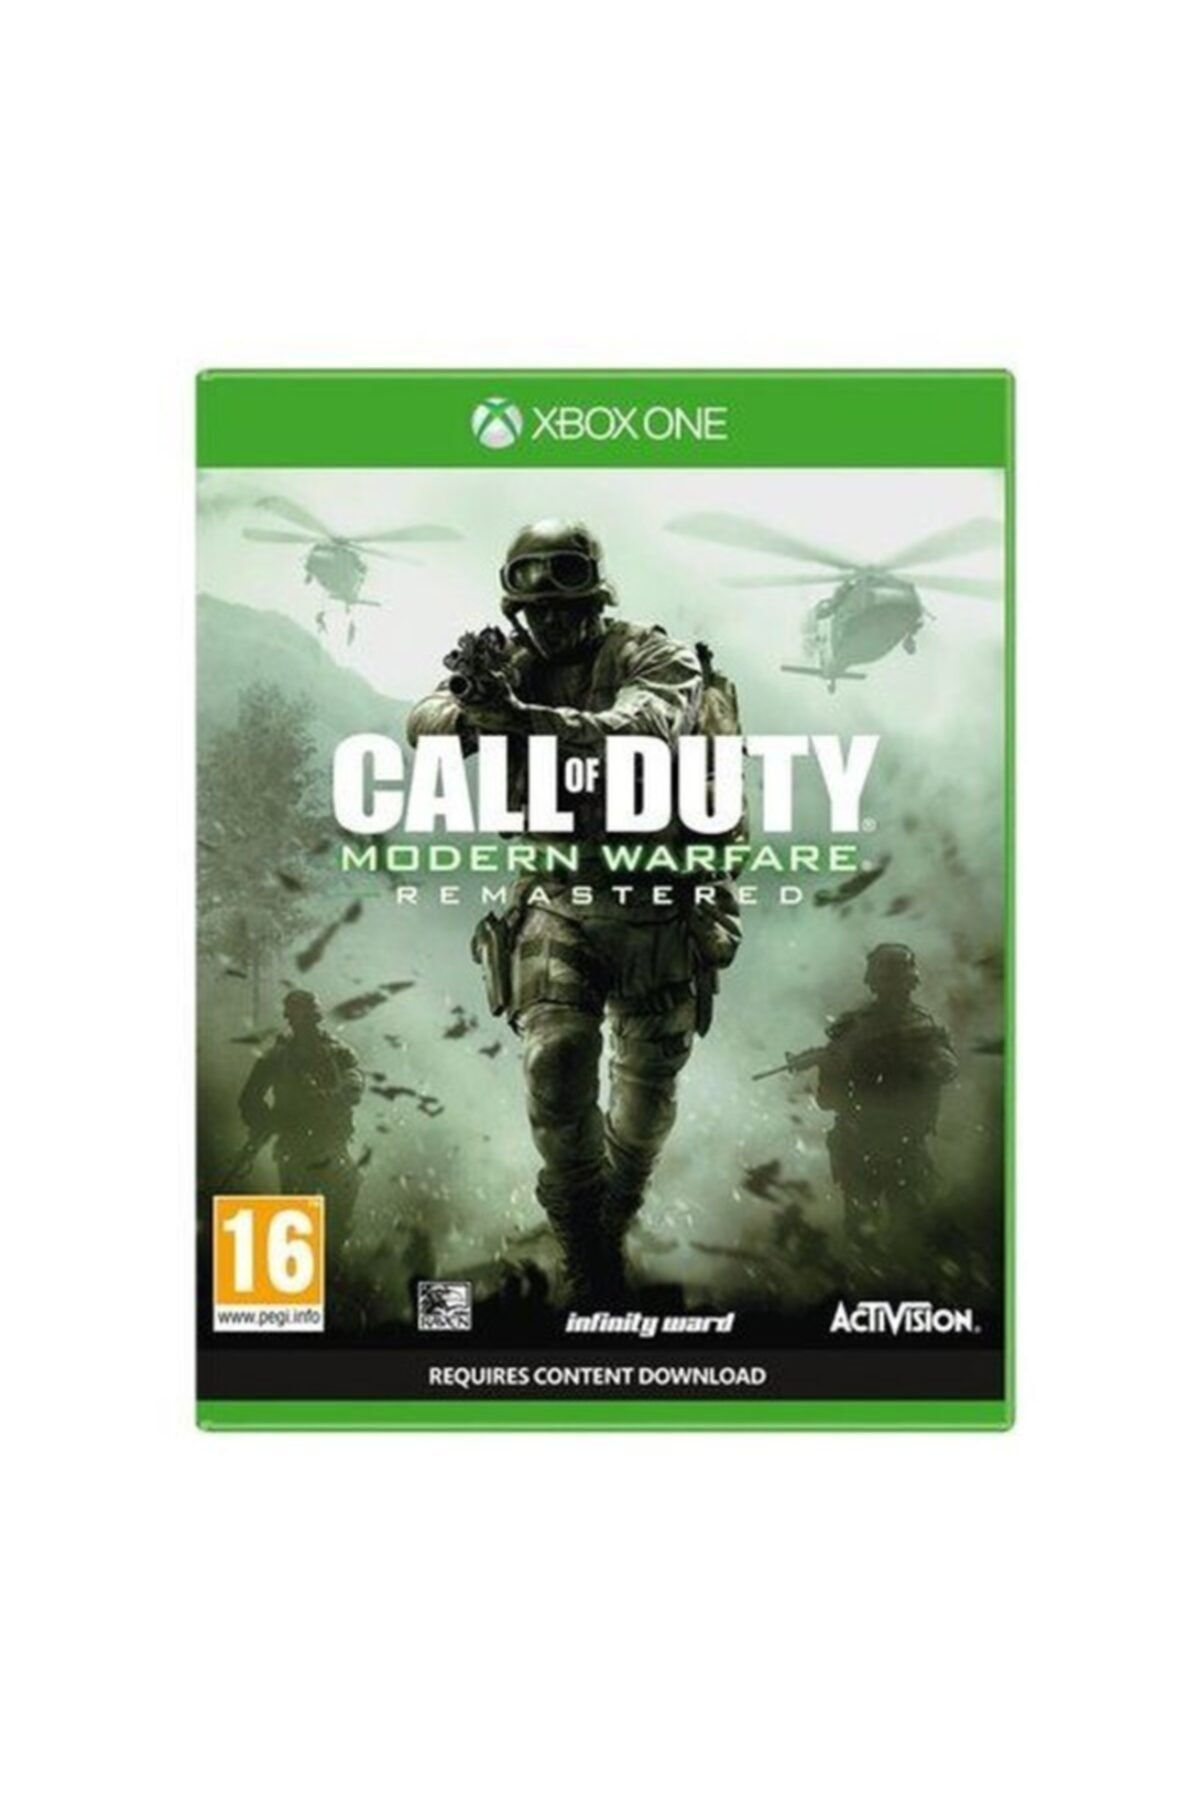 ACTIVISION Xbox One Call Of Duty Modern Warfare Remastered 1